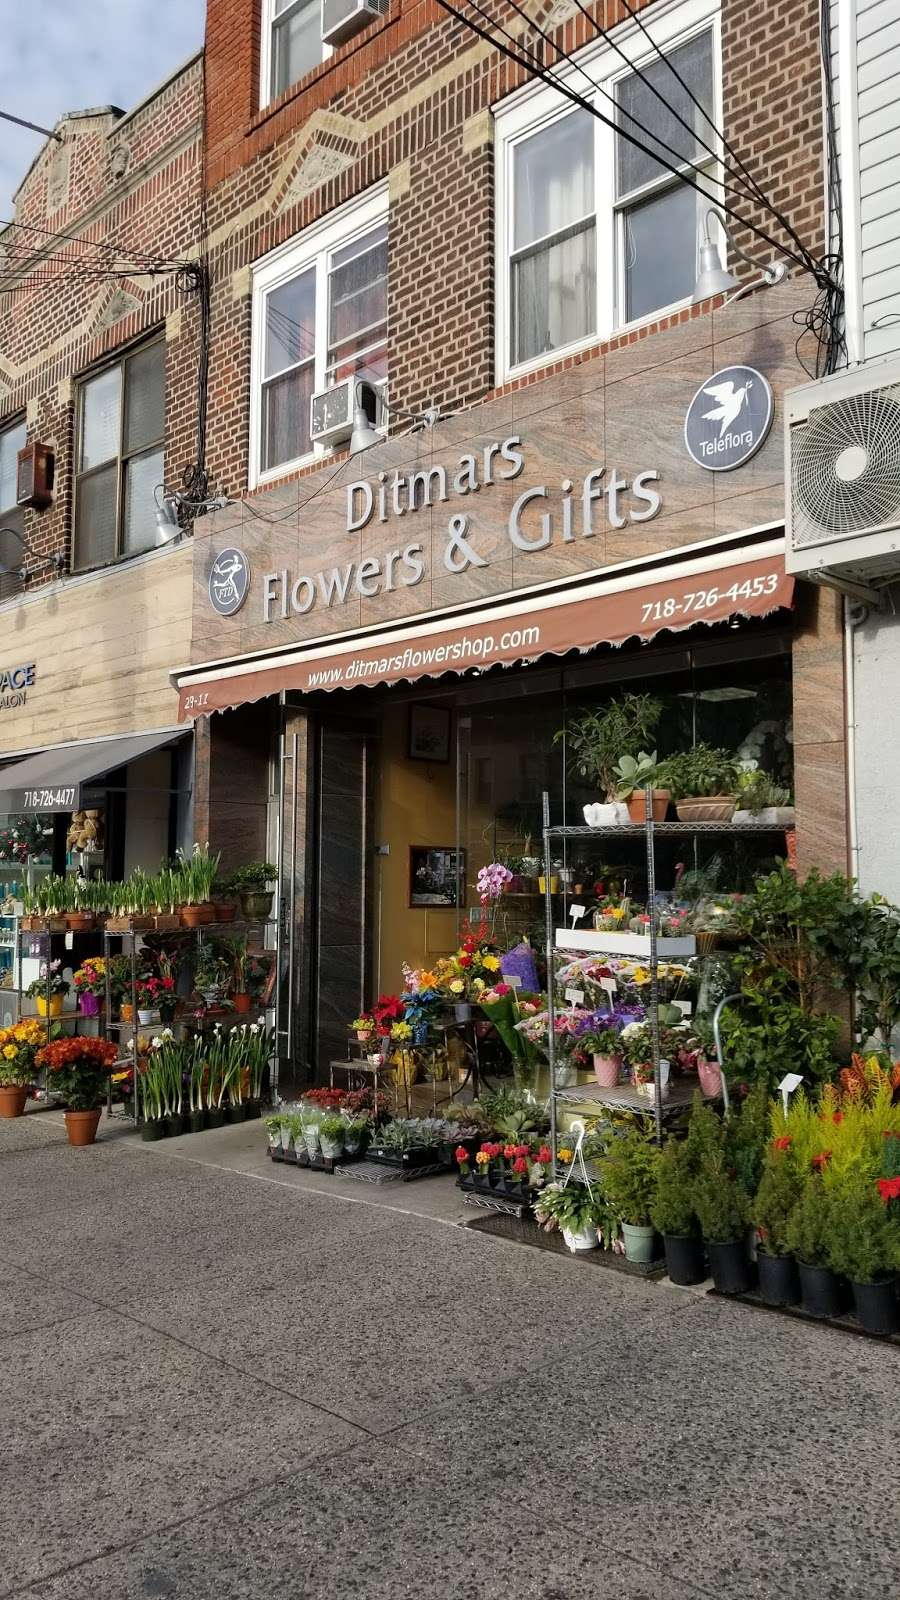 Ditmars Flower - florist  | Photo 3 of 10 | Address: 2911 Ditmars Blvd, Queens, NY 11105, USA | Phone: (718) 726-4453